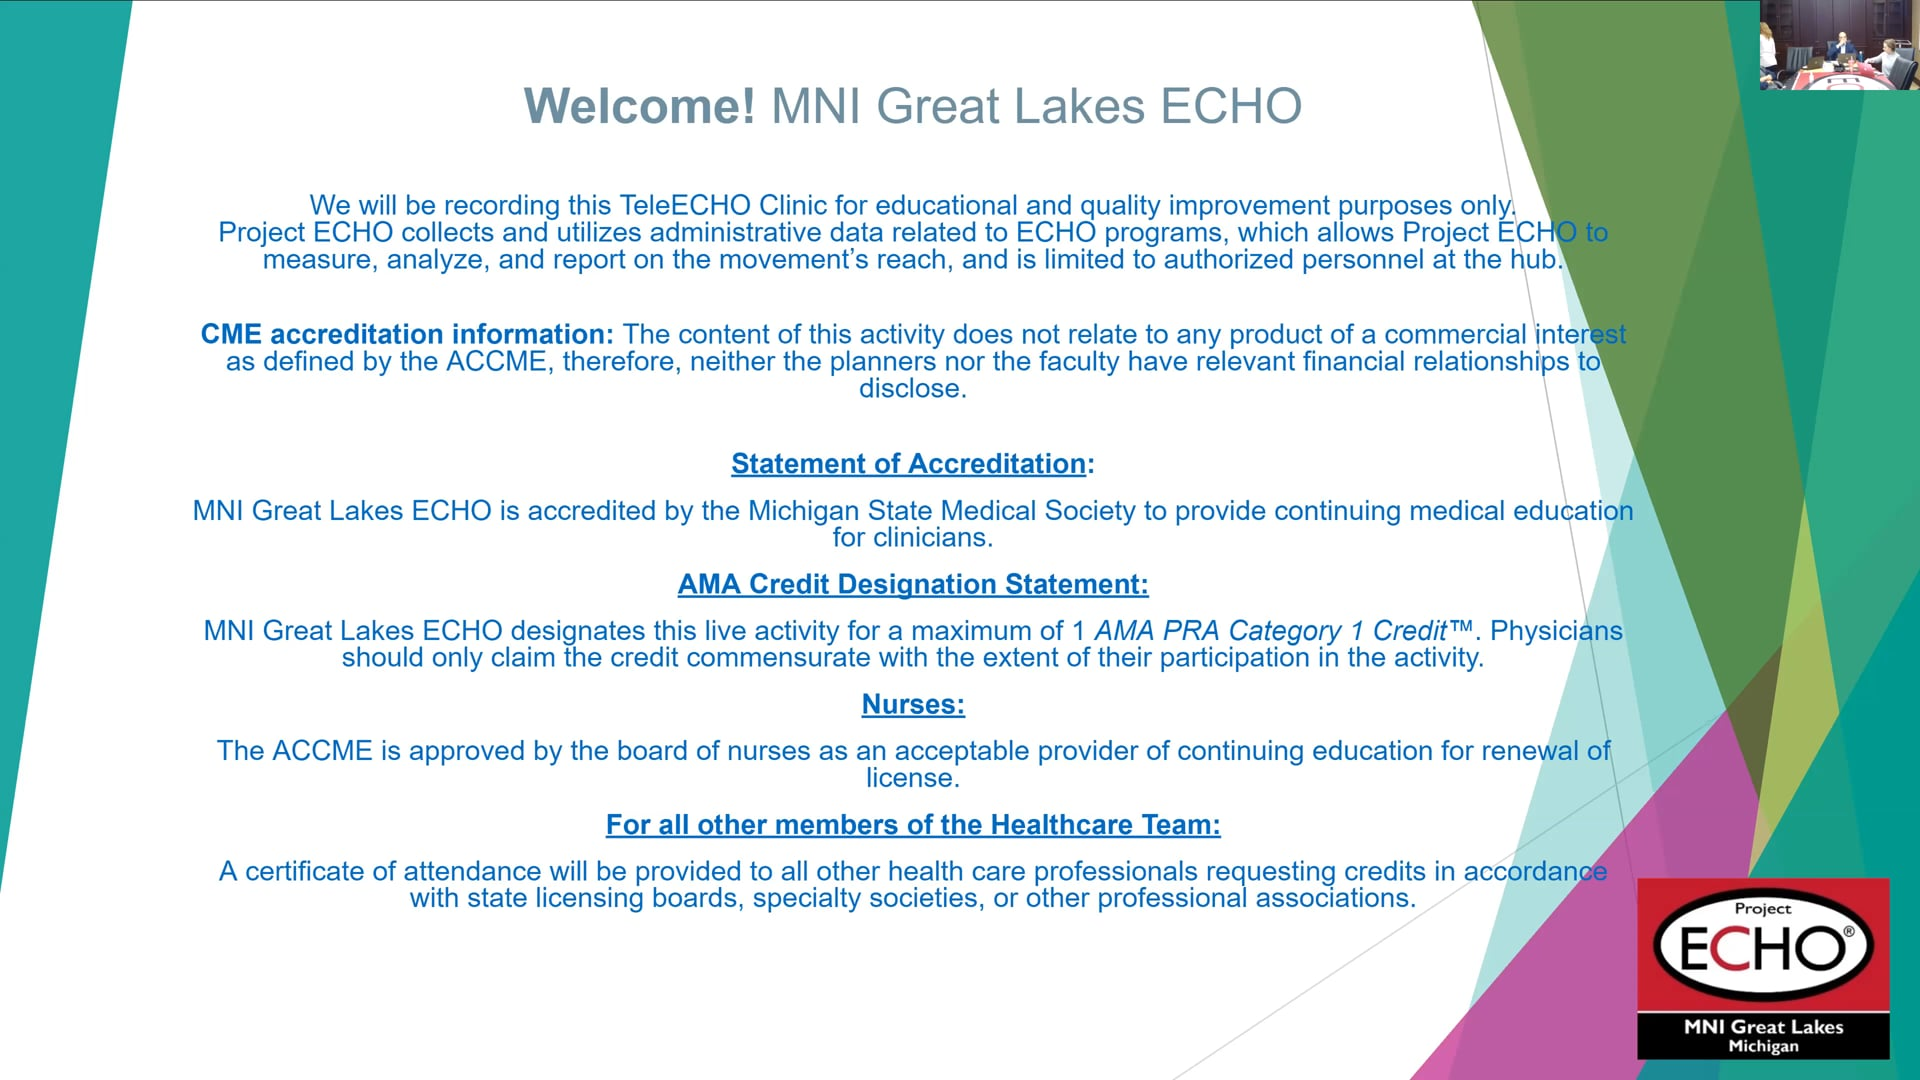 2020-02-14 - Addiction Echo - Reducing Opioid Usage in Acute Care Settings - One Hospital's Experience